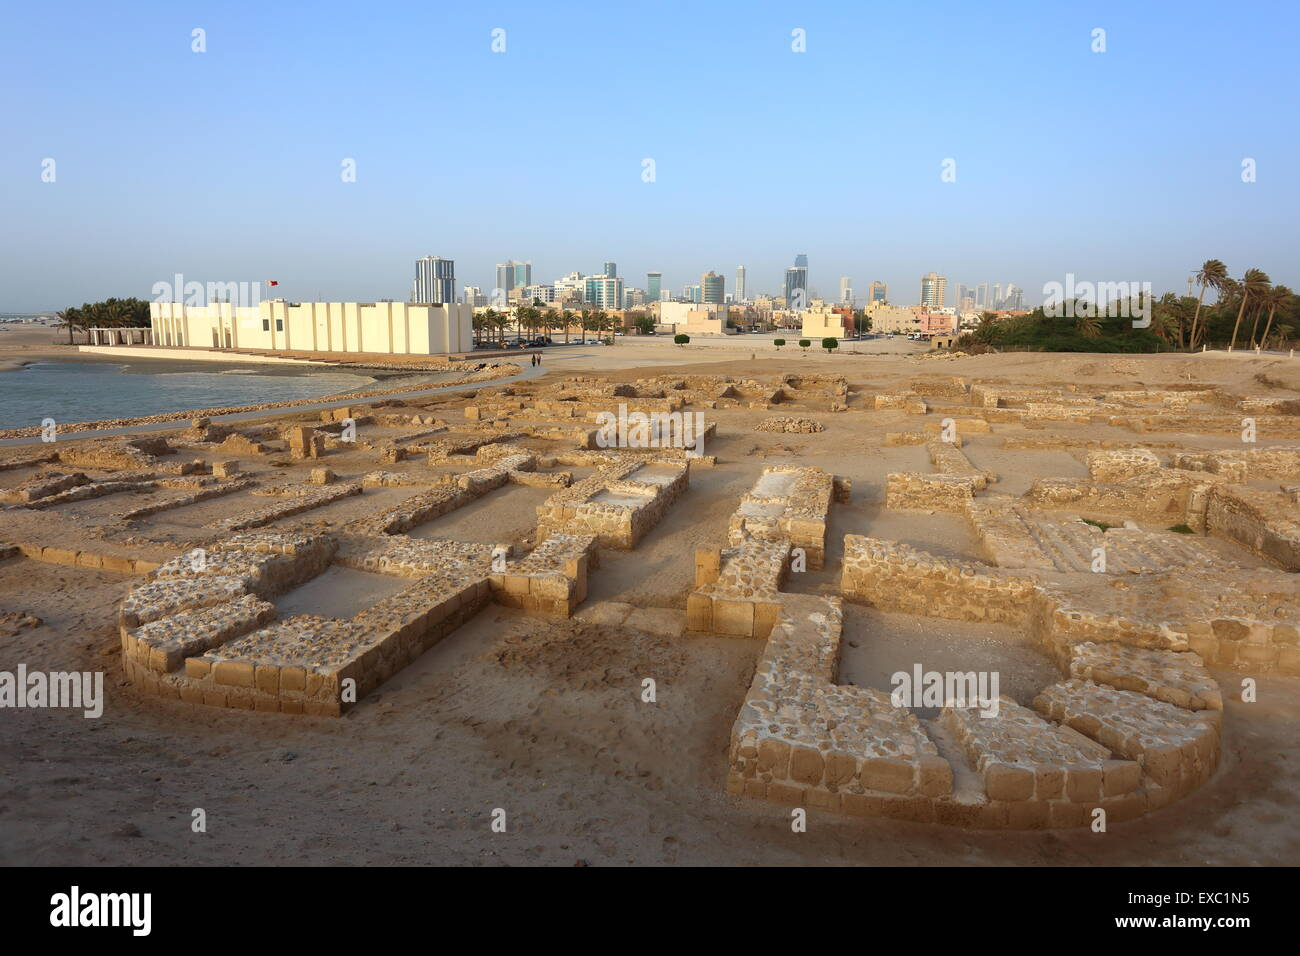 Bahrain Fort Museum with excavations of Dilmun-era ruins in front, Kingdom of Bahrain - Stock Image